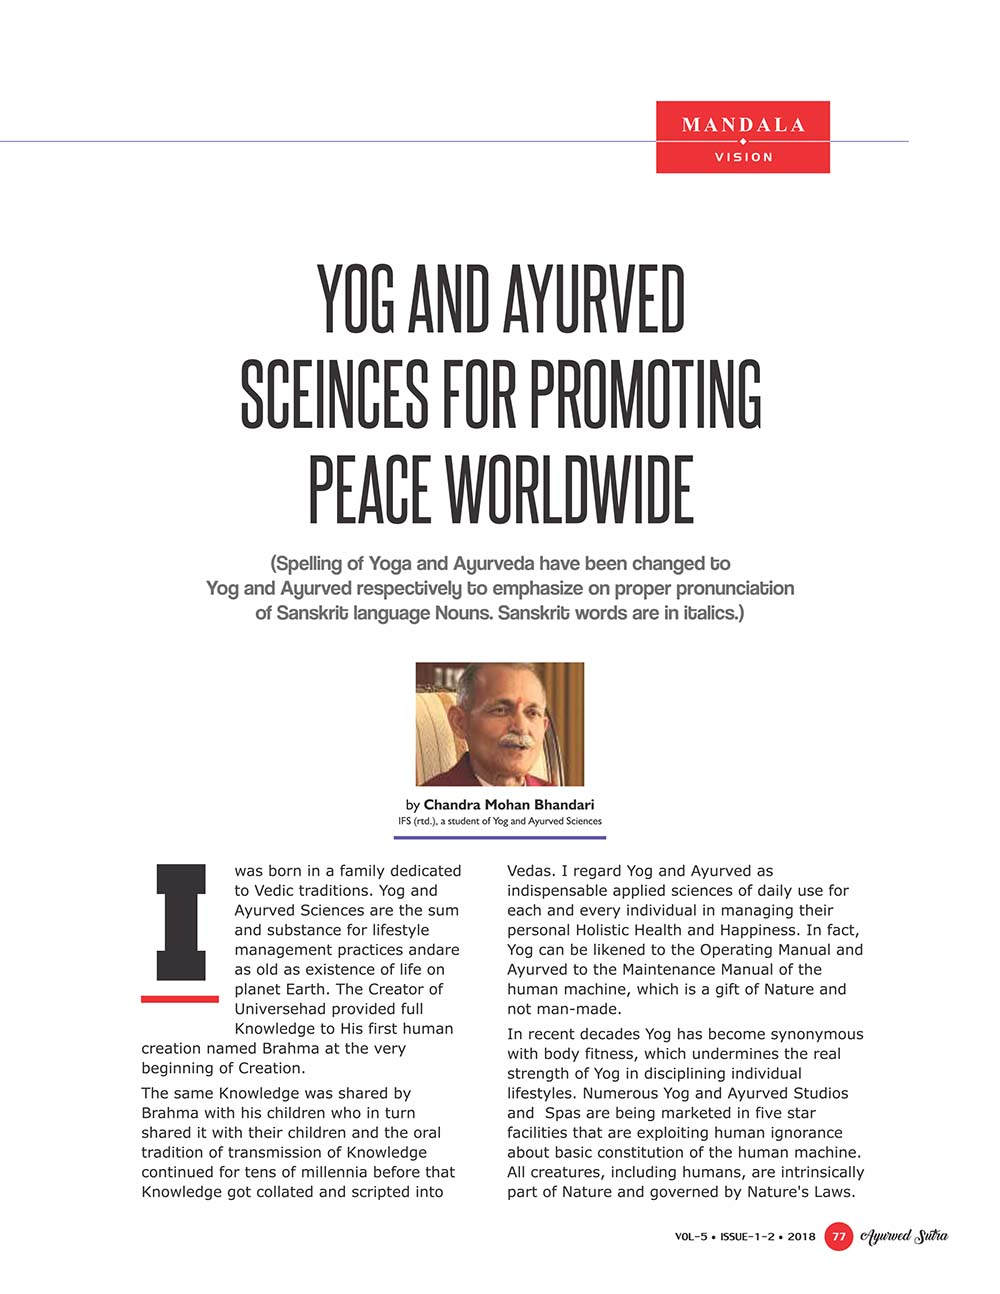 Ayurvedsutra Vol 05 issue 01 02 79 - Yog and Ayurved sceinces for promoting peace worldwide